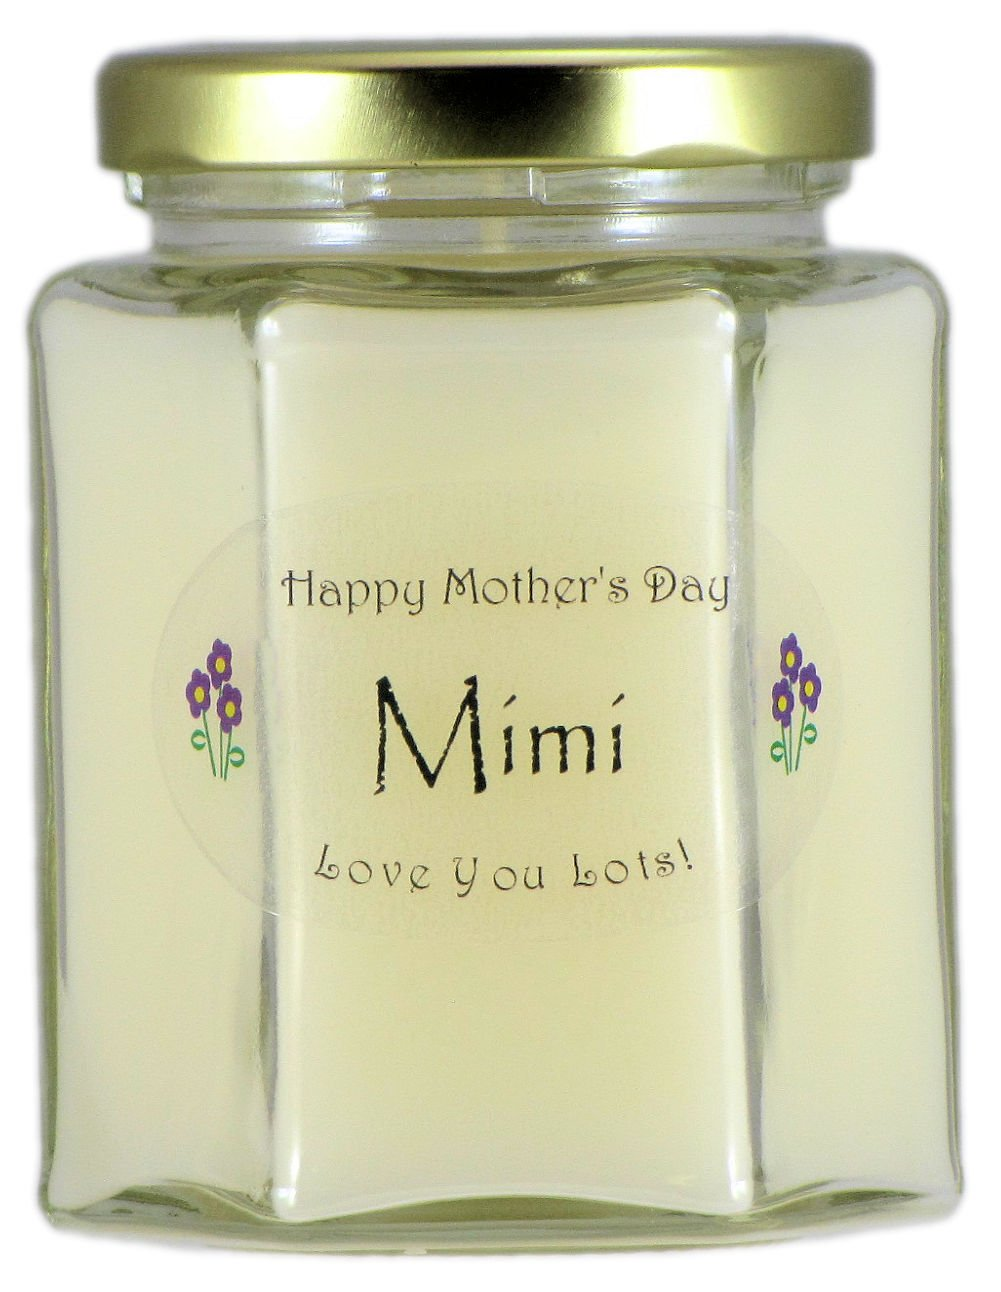 Lilac Scented Mothers Day Gift Candle Just Makes Scents Mimi Mothers Day Candle Hand Poured In